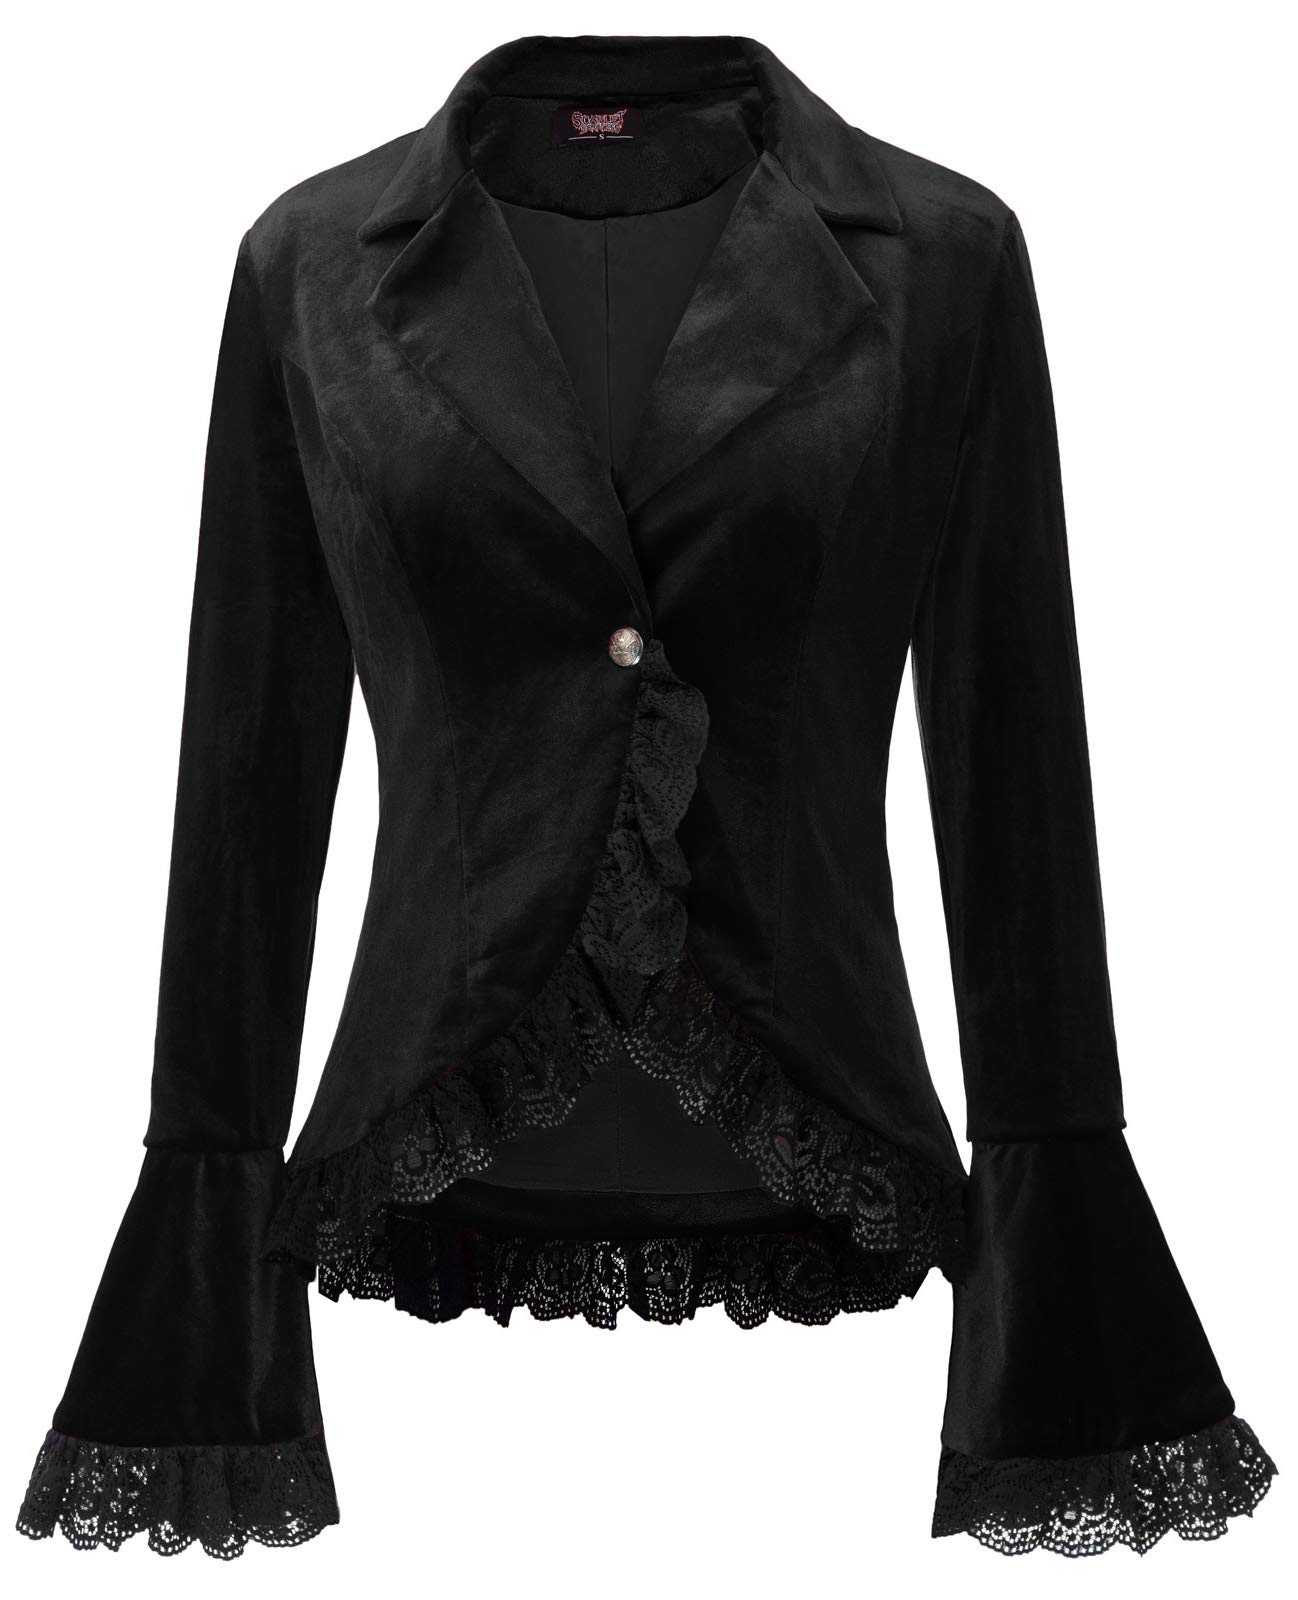 SCARLET DARKNESS Women Victorian Gothic Long Sleeve Lapel Collar Lace Trim Velvet Coat